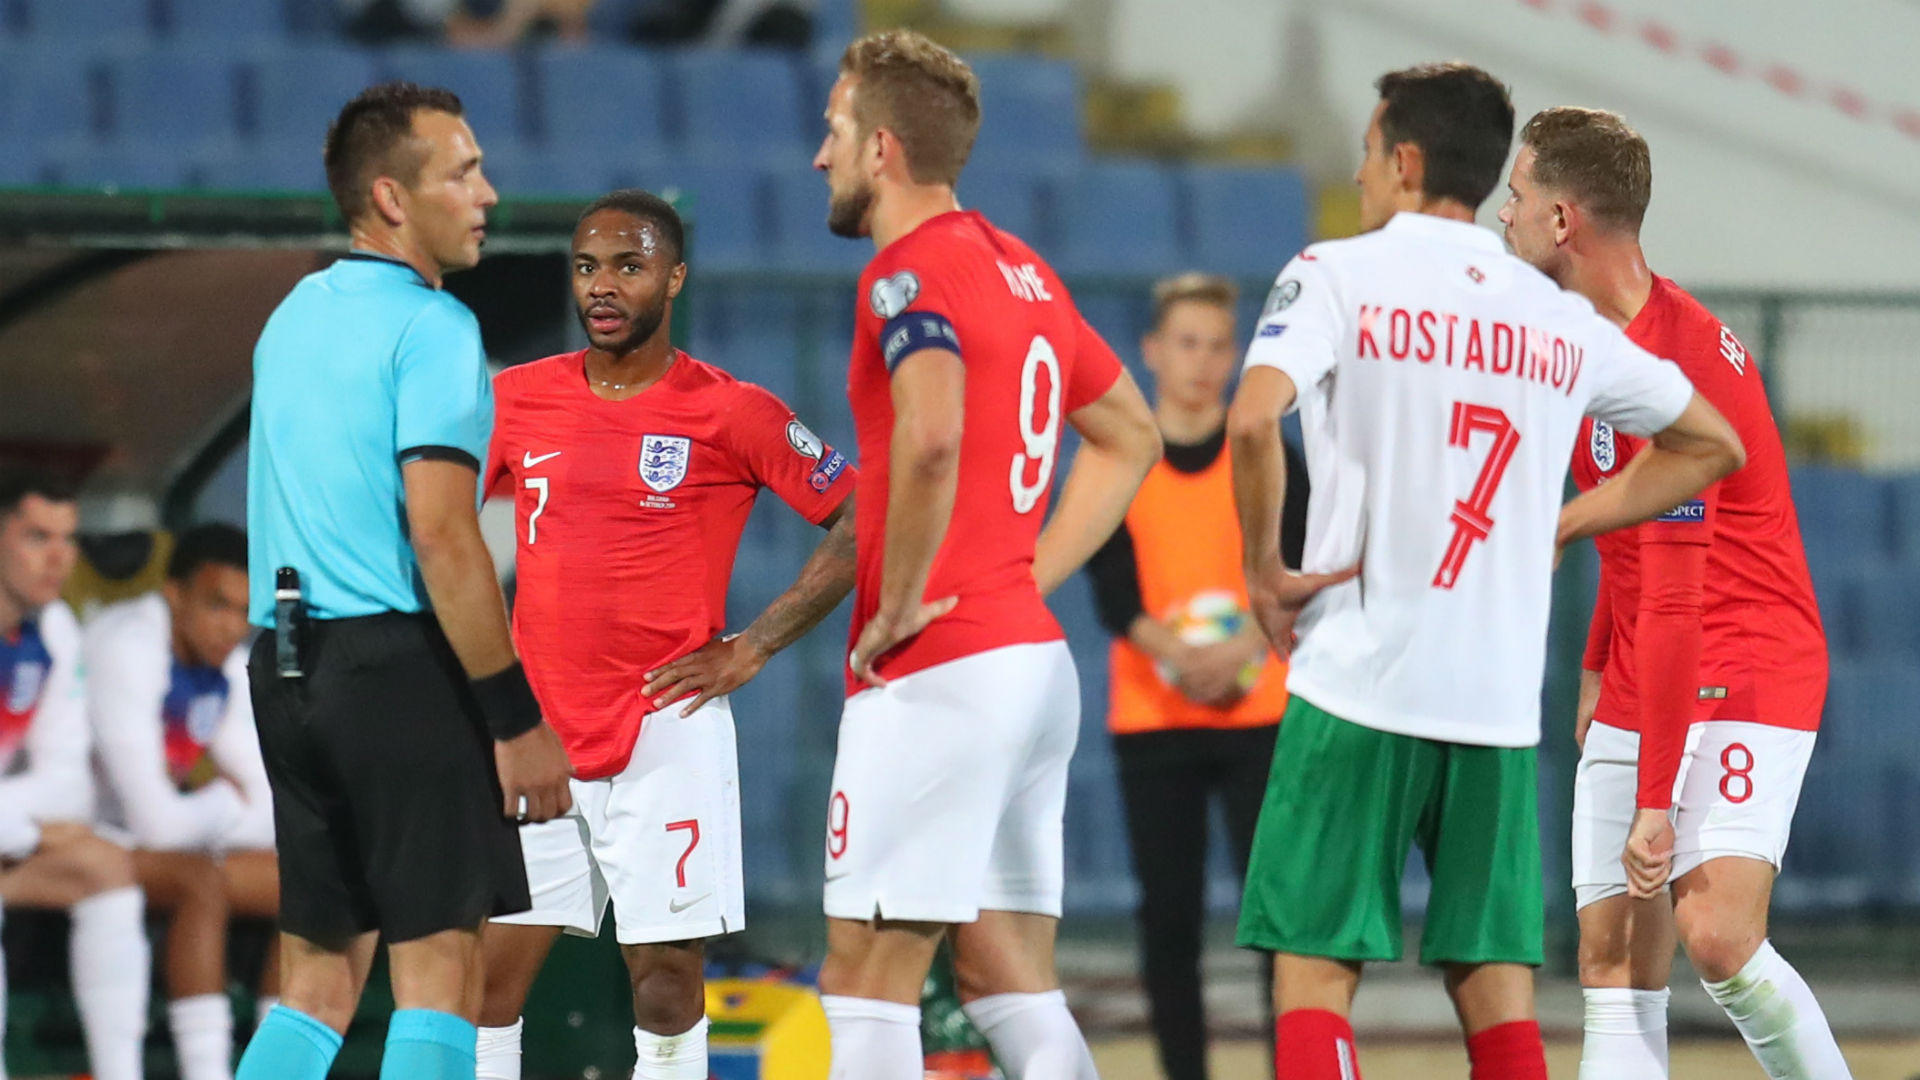 Bulgaria fined $83,000, stadium banned for racism in England game